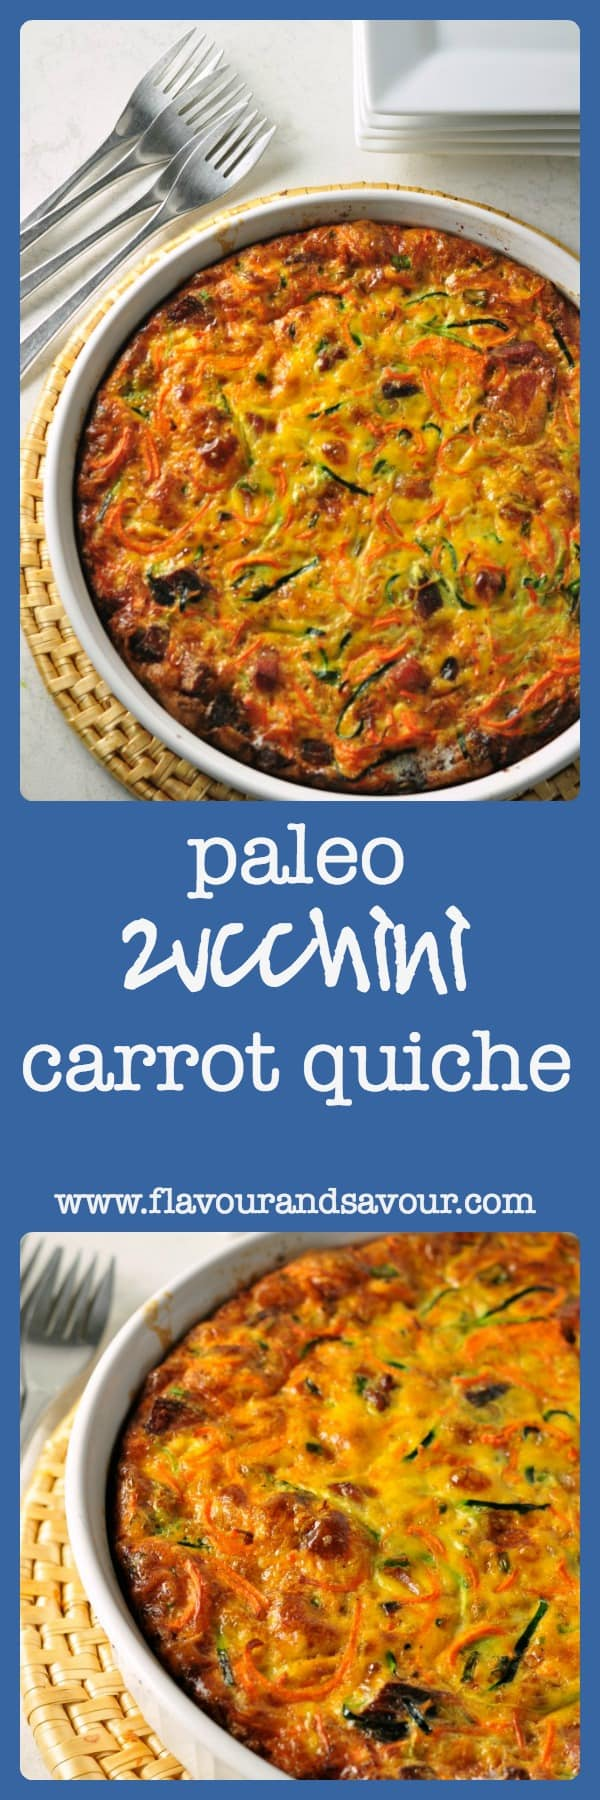 Packed with veggies and flavoured with herbs and bacon, this crustless paleo zucchini carrot quiche makes an easy weeknight meal.|www.flavourandsavour.com